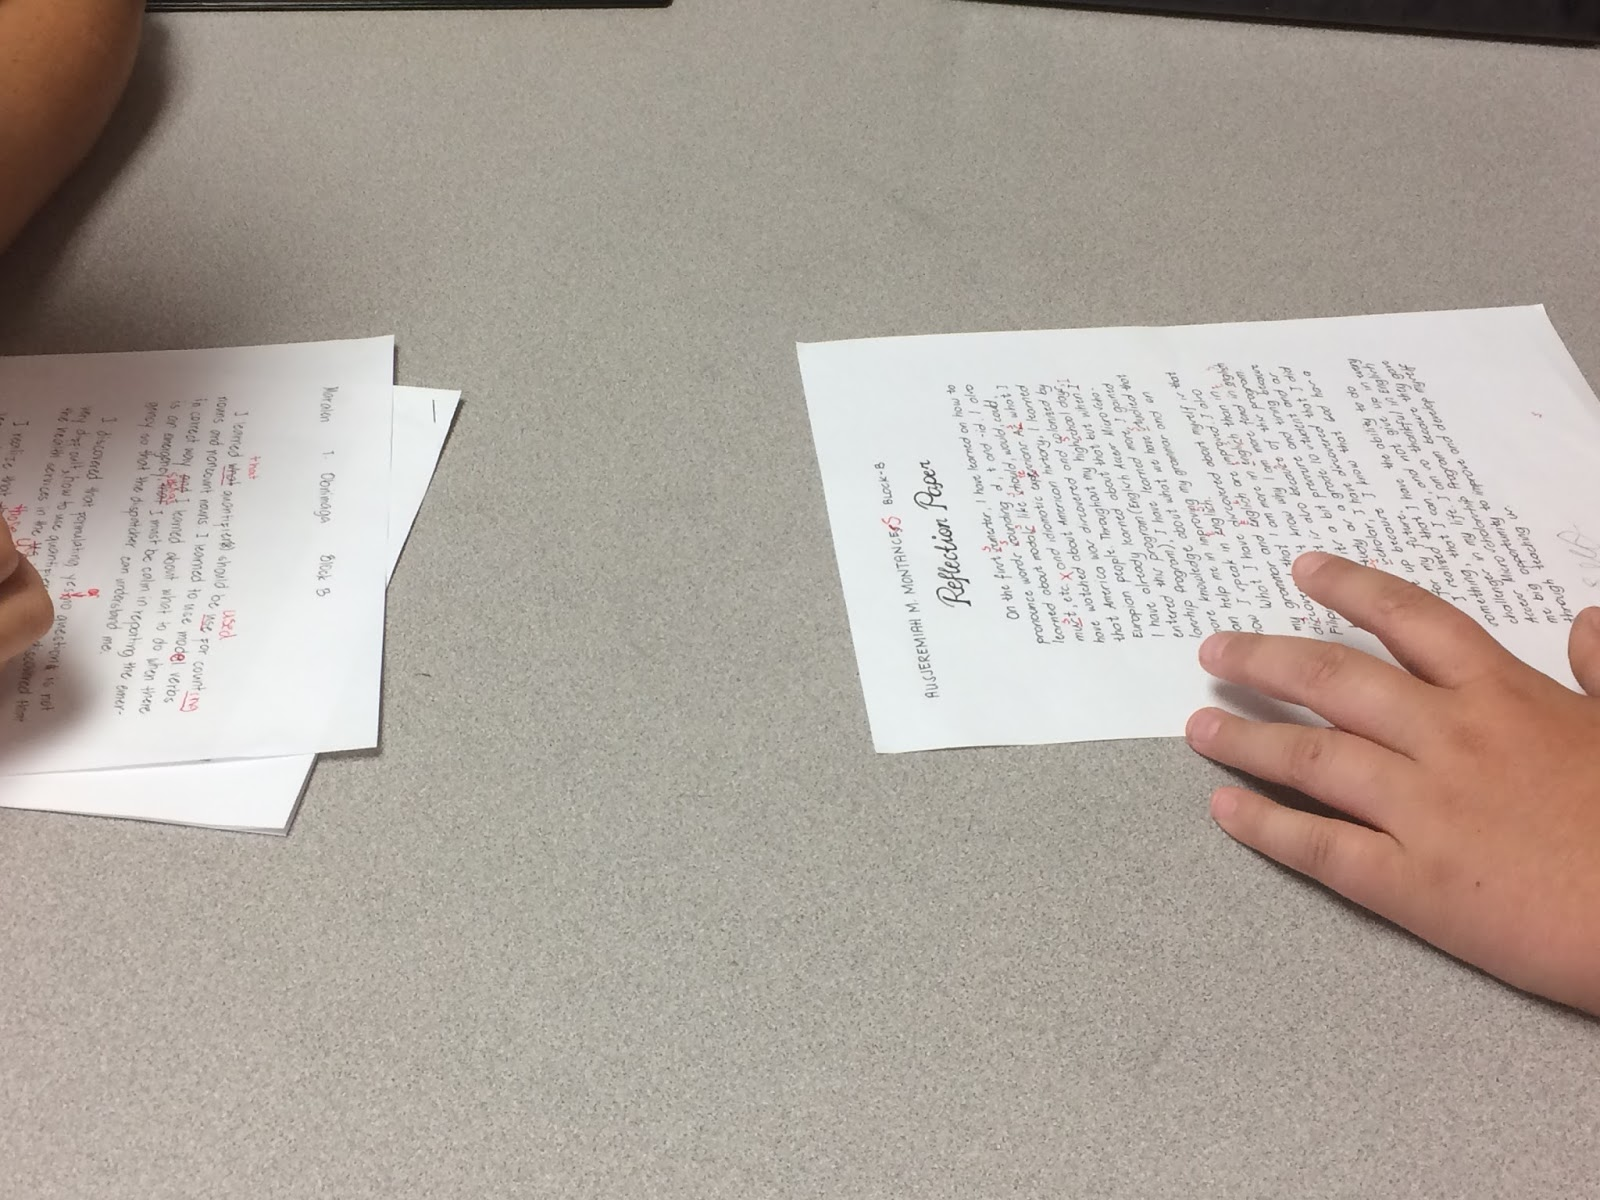 international junior writers club  writing skills and their collaborative writing activities us students majority of the scholars specifically mentioned that their collaboration